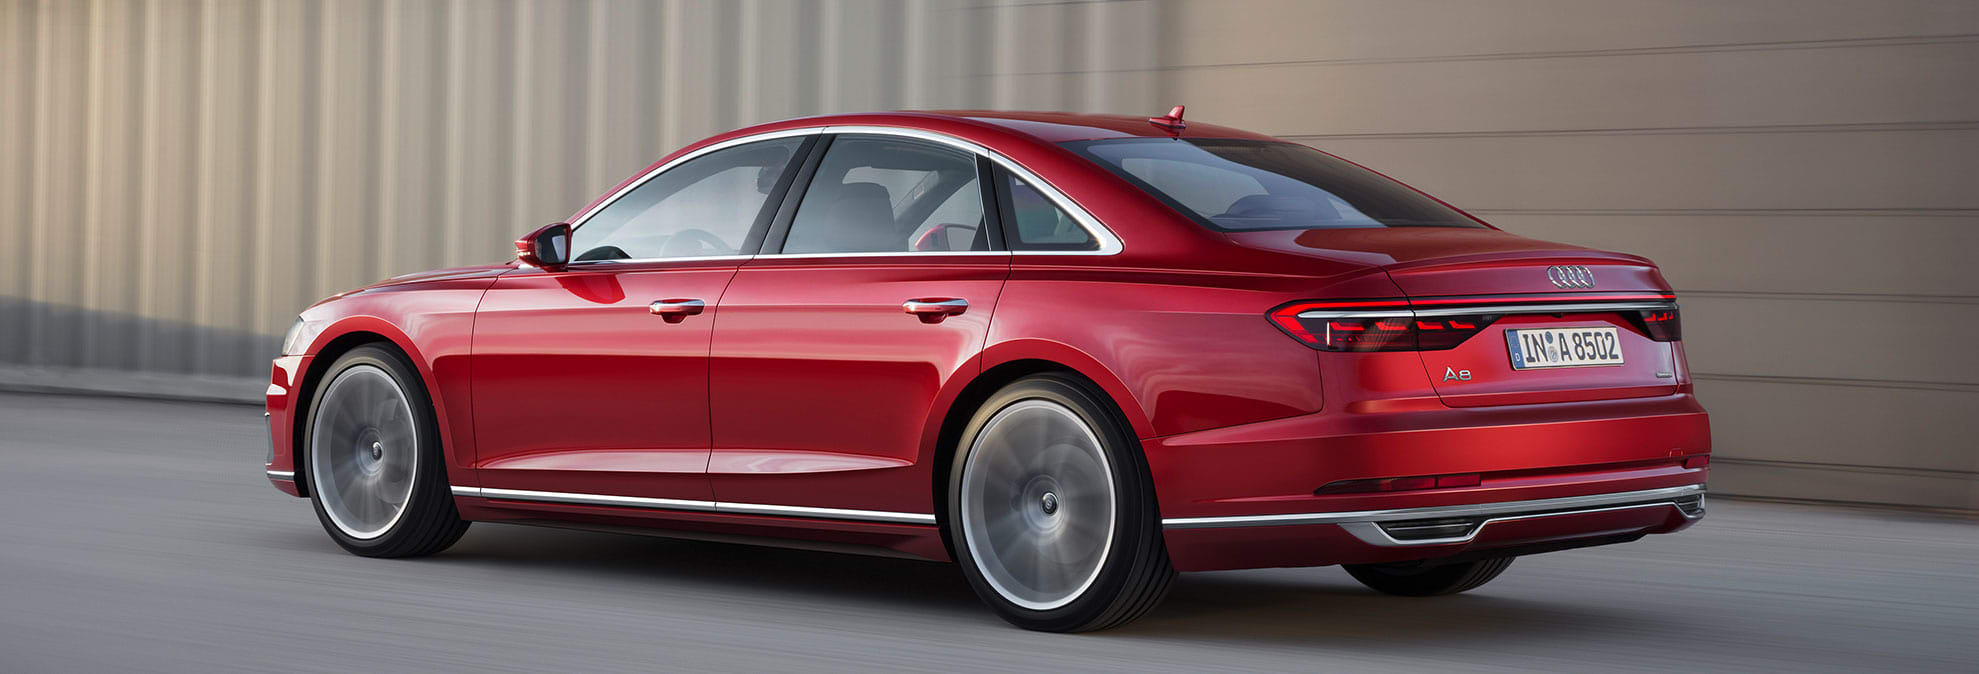 Audi S Pitch Of New Self Driving Tech Could Go Too Far